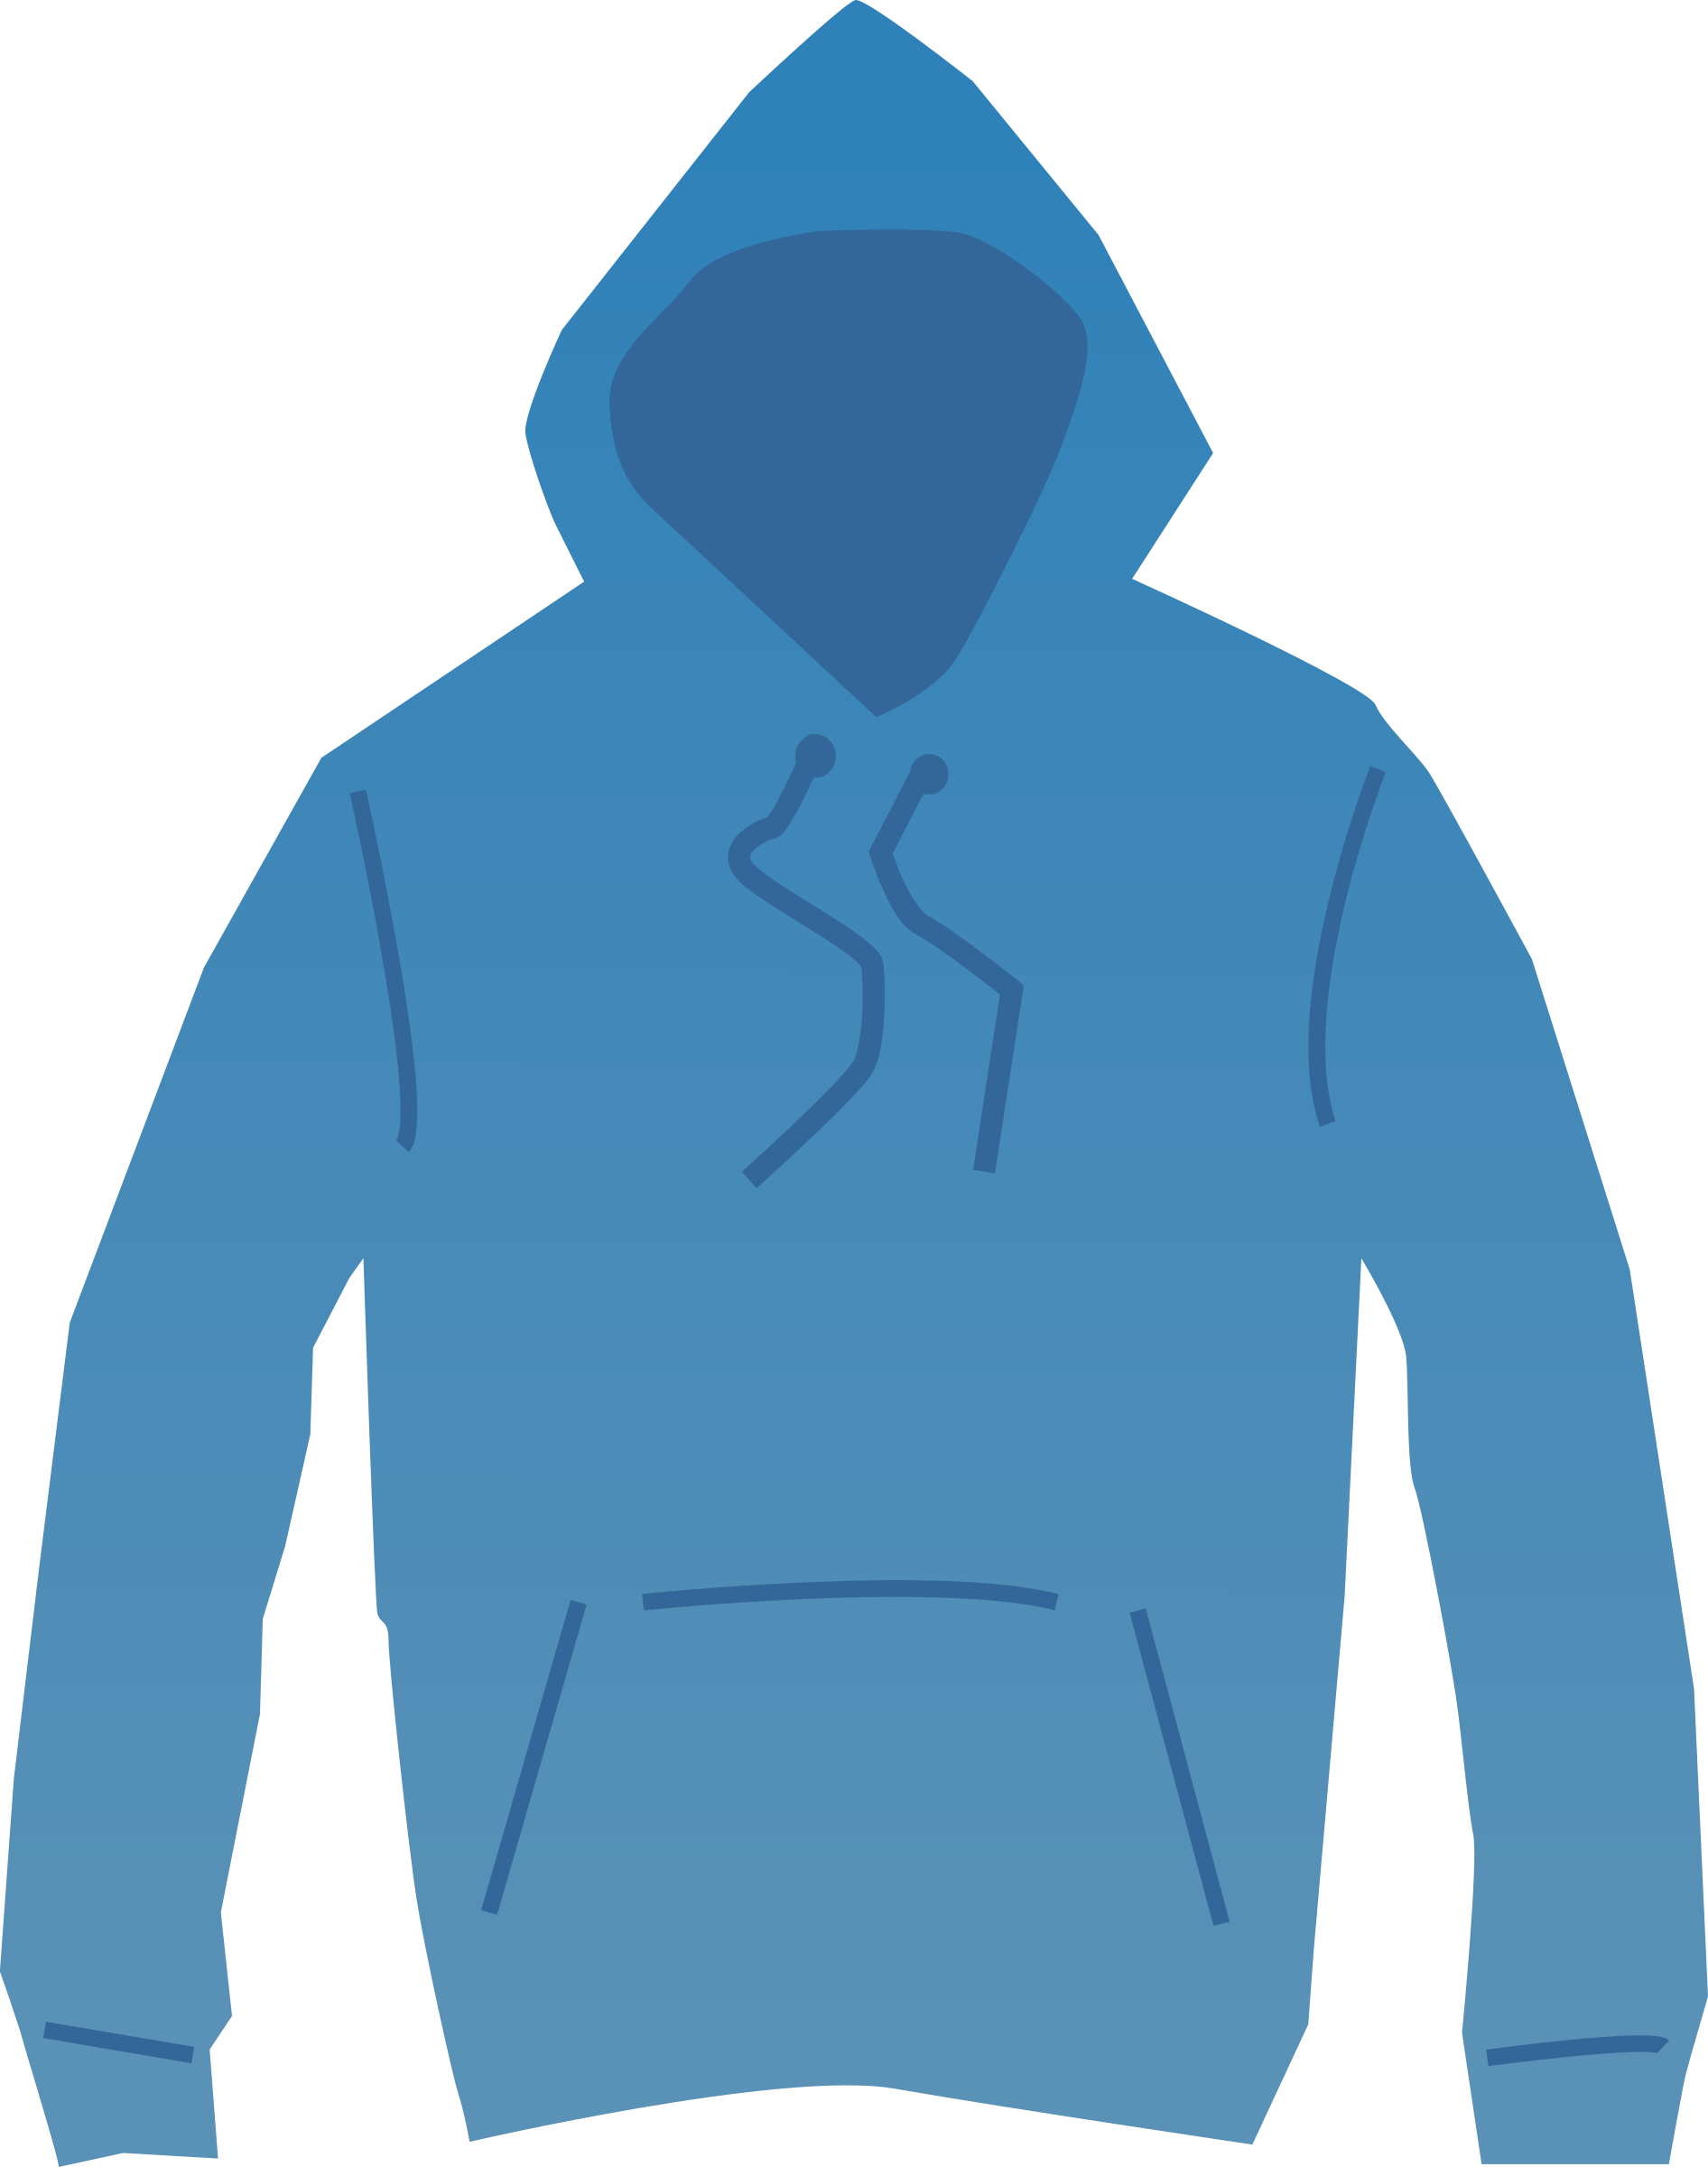 Bluw Hoodie Clipart.